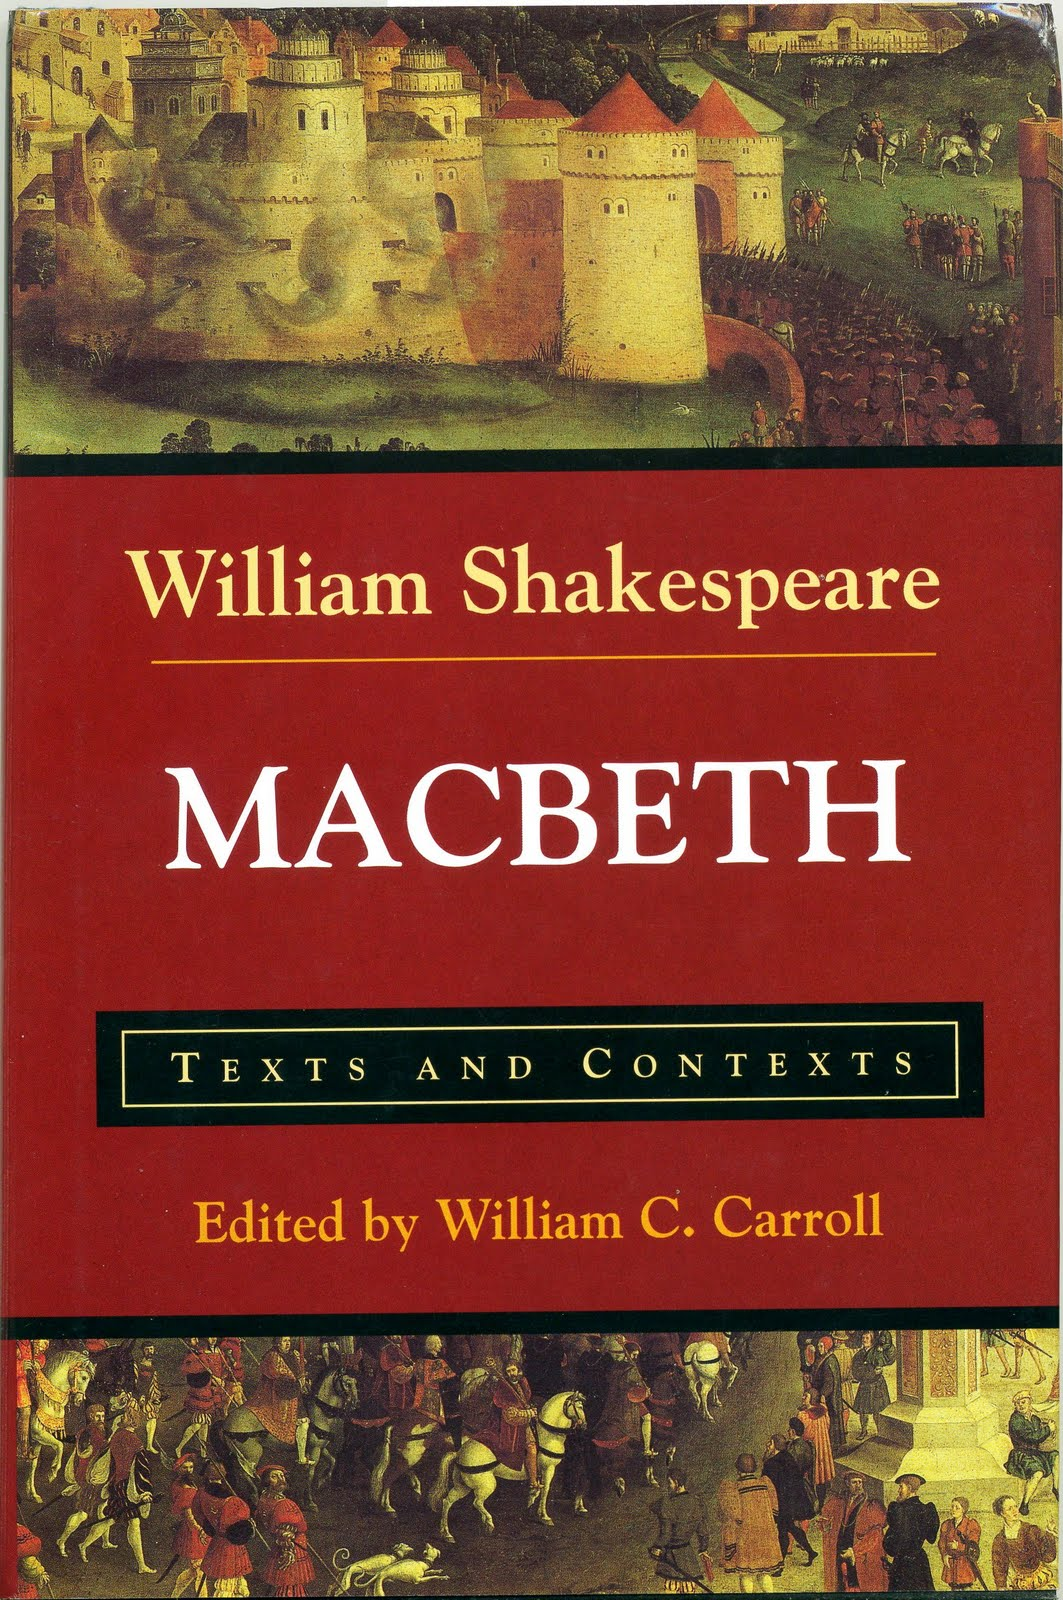 Literary analysis of the play macbeth by william shakespeare